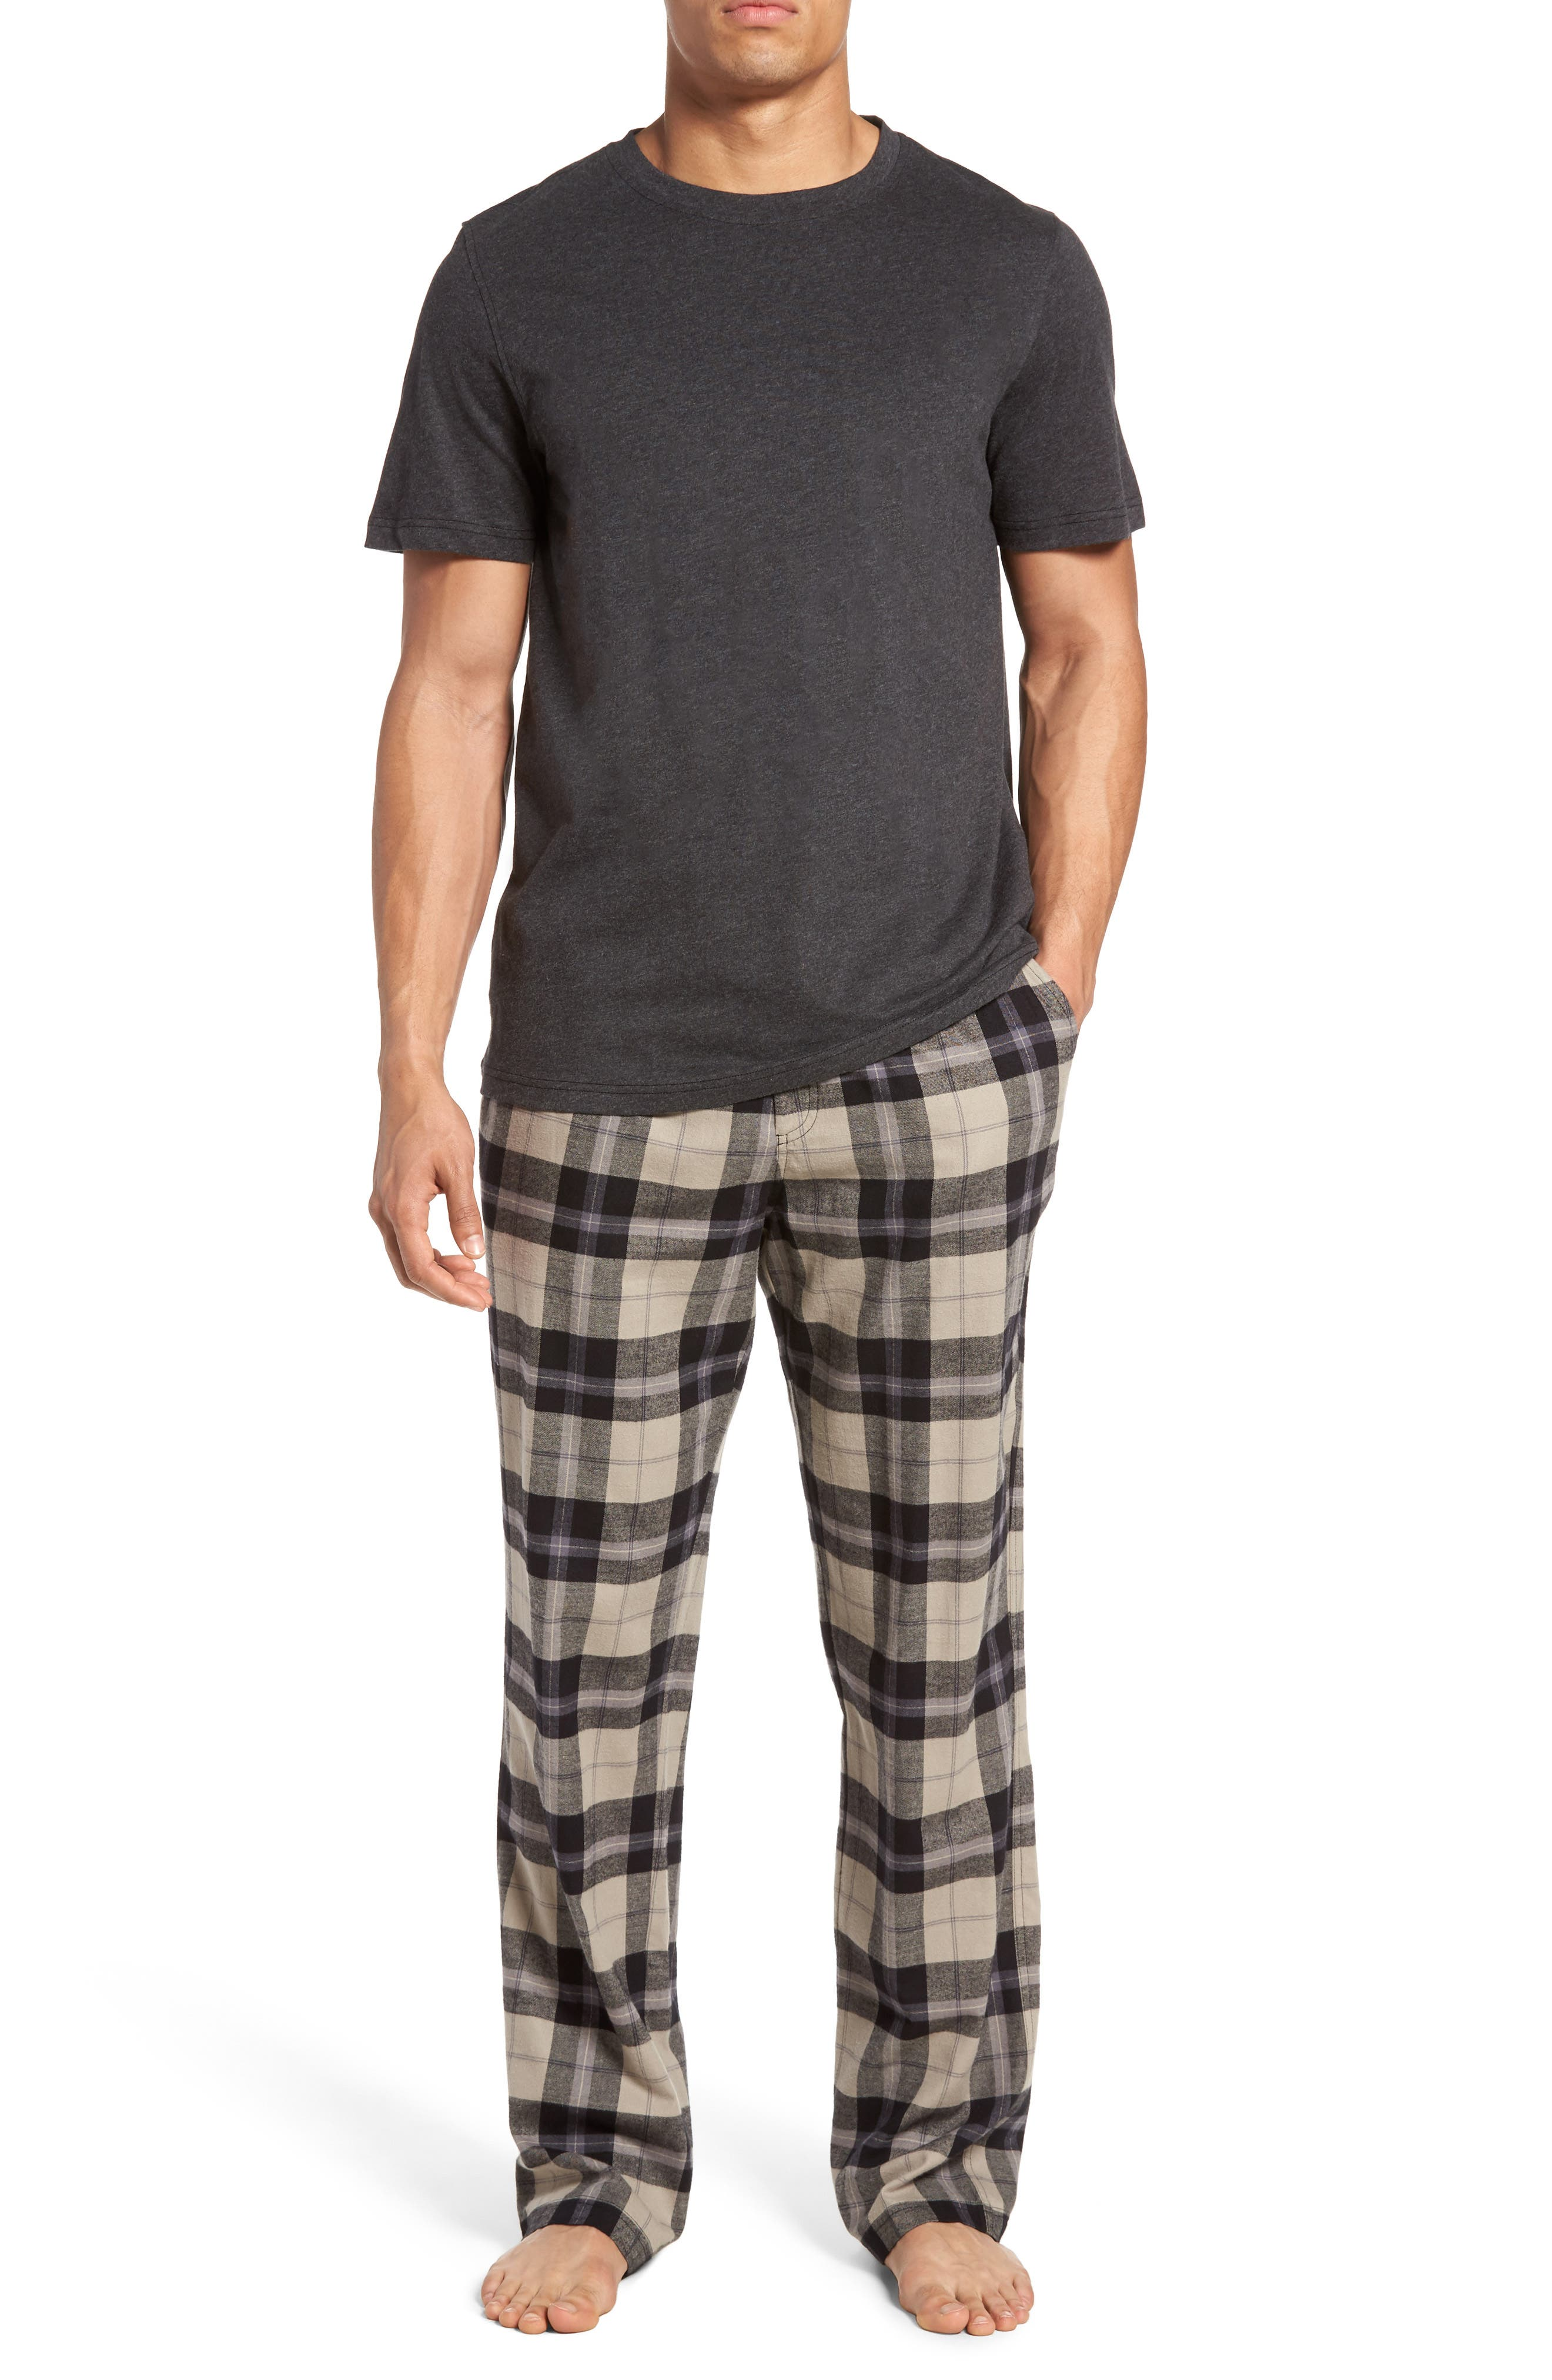 Our curated sleepwear Australia collection includes options for men and women in fleece, cotton and silk. And guys, if you're looking for perfect gift ideas for your girlfriend, our Pyjamas collection includes some sexy sleepwear options, too.